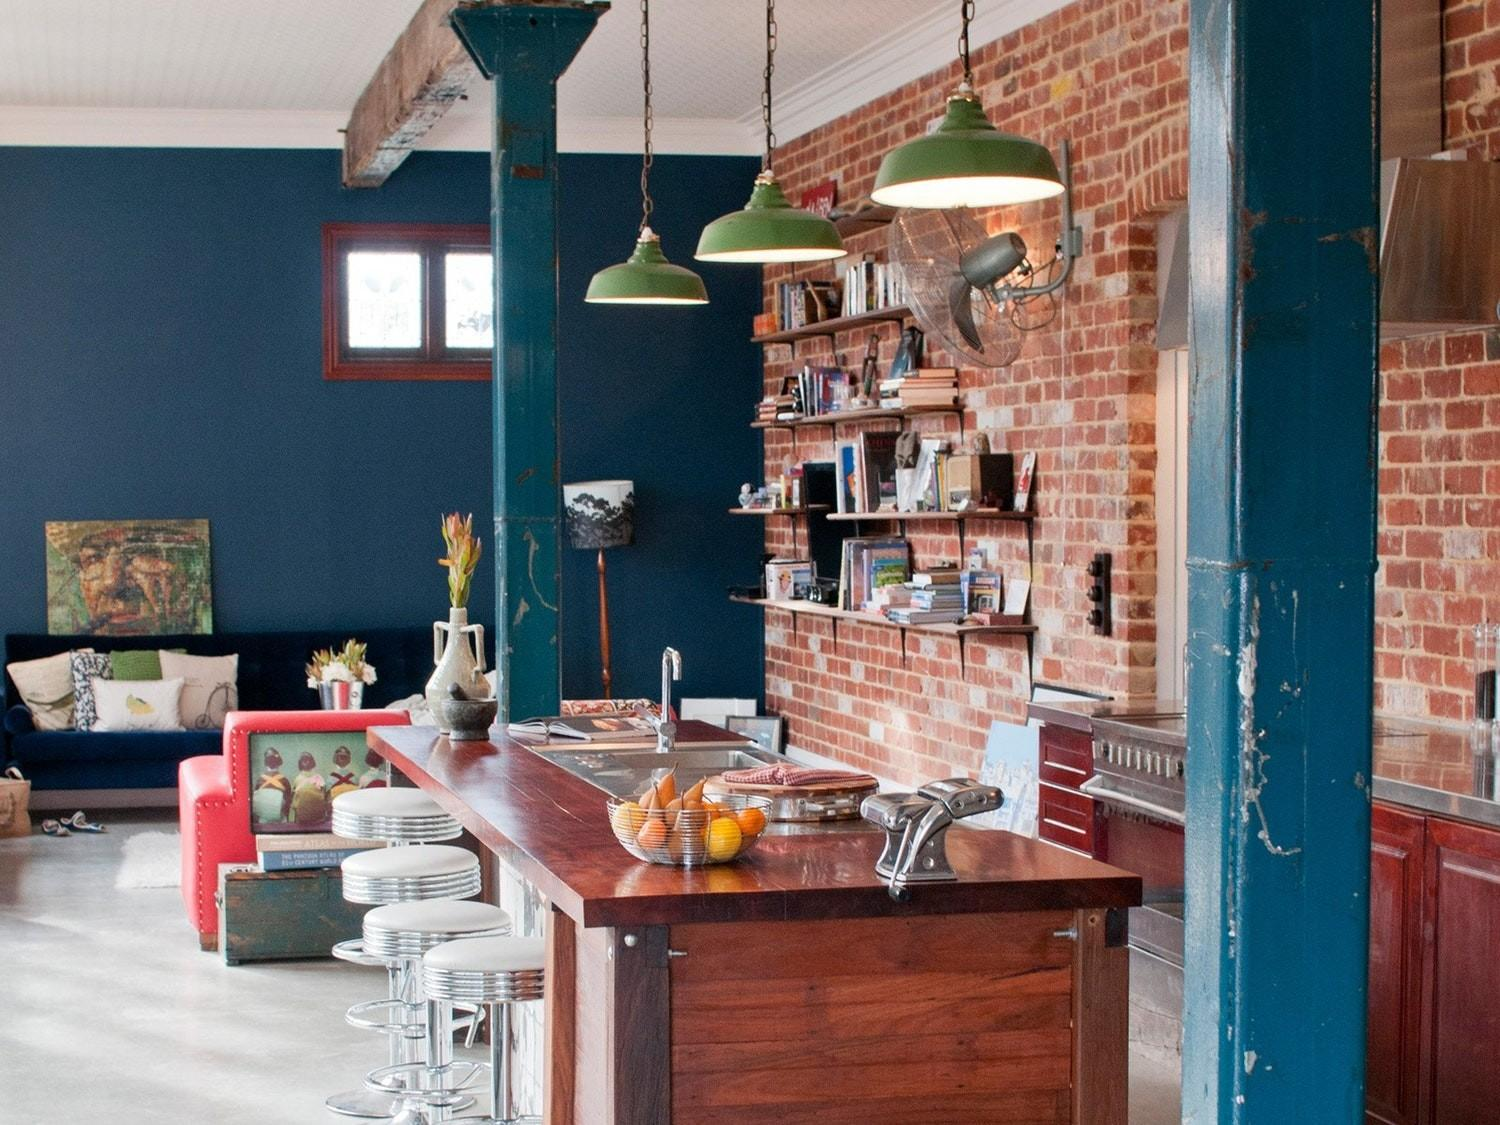 Kitchens Exposed Brick Walls Kitchn